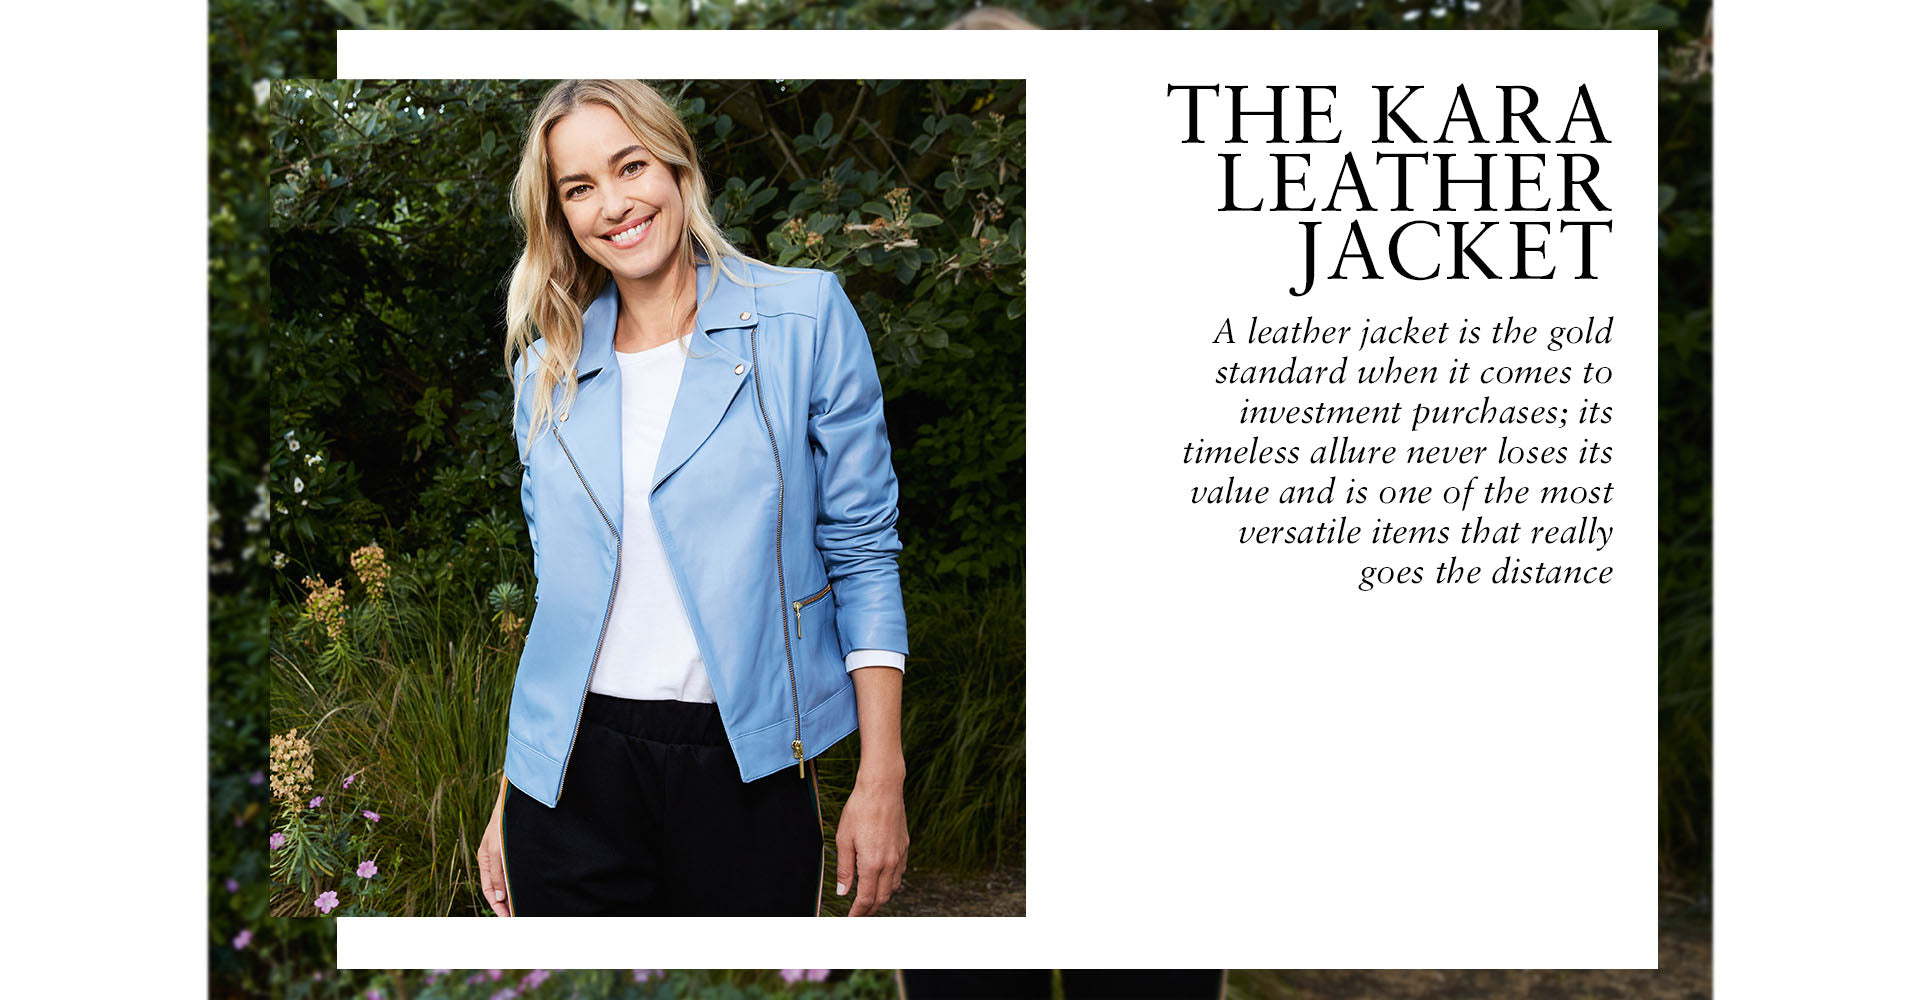 The Kara Leather Jacket